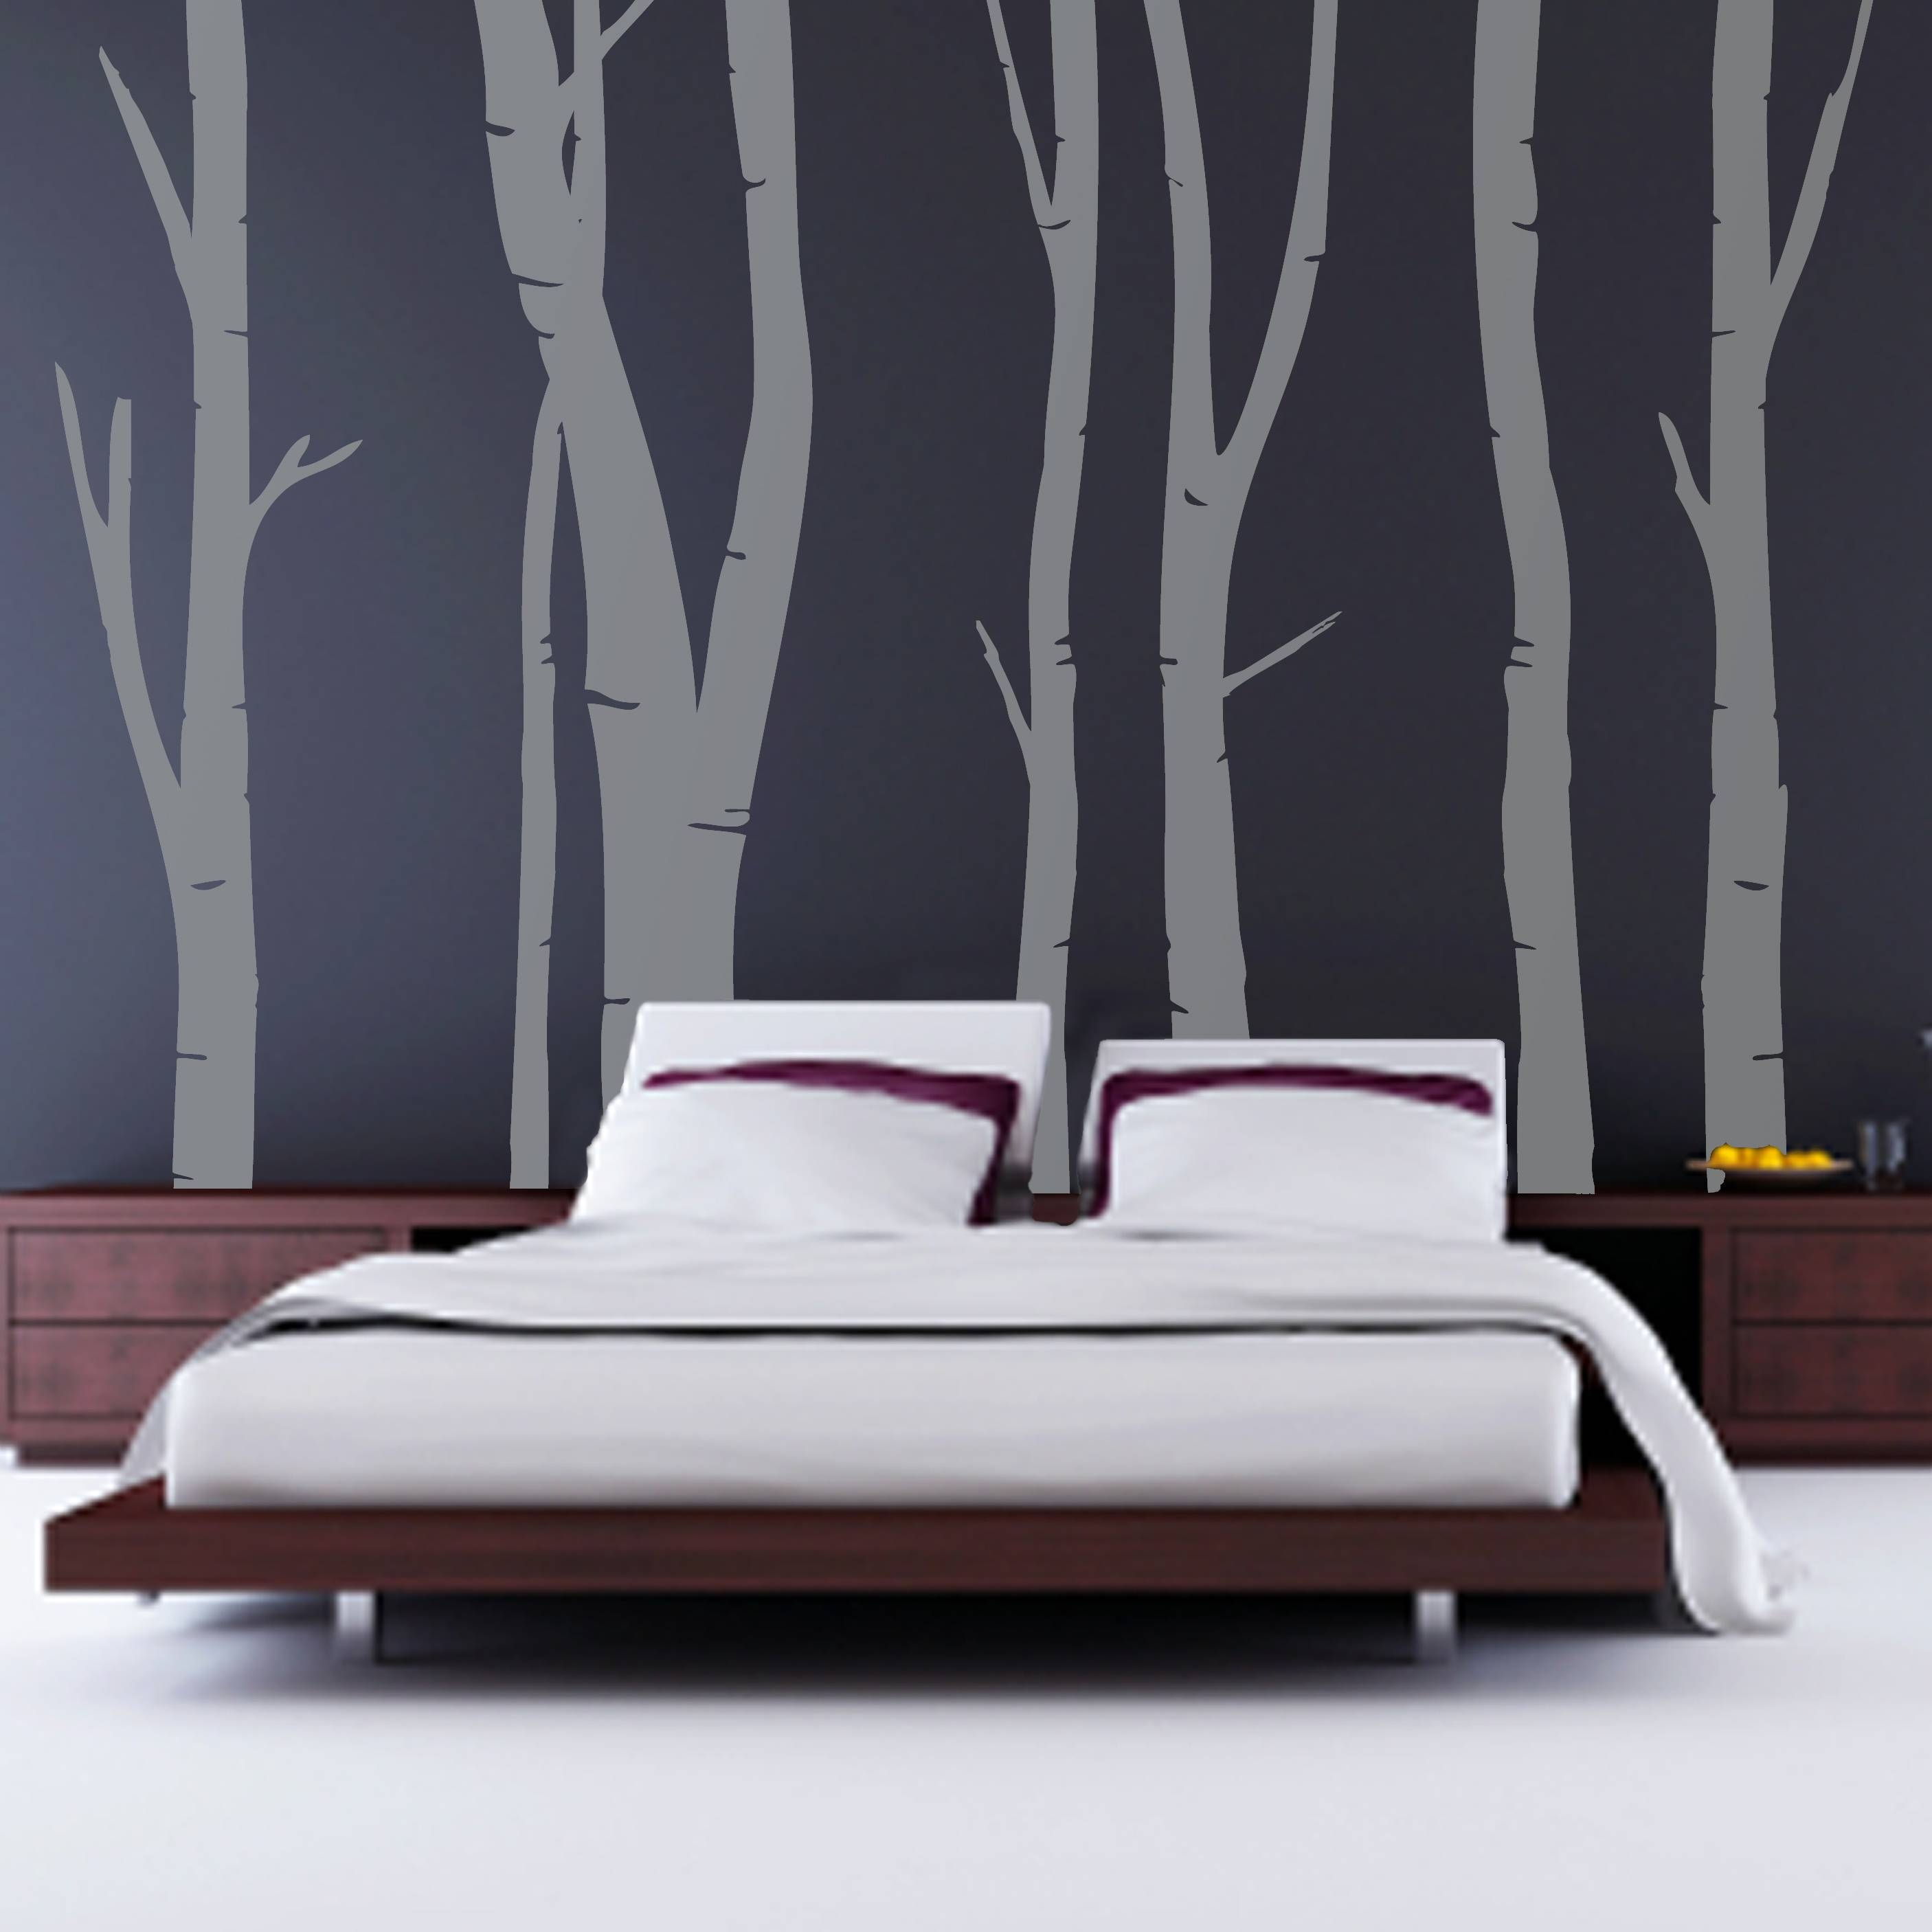 Fine Design Bedroom Wall Art Ideas Glamorous 15 Easy Diy Wall Art For Most Up To Date Glamorous Wall Art (View 9 of 30)